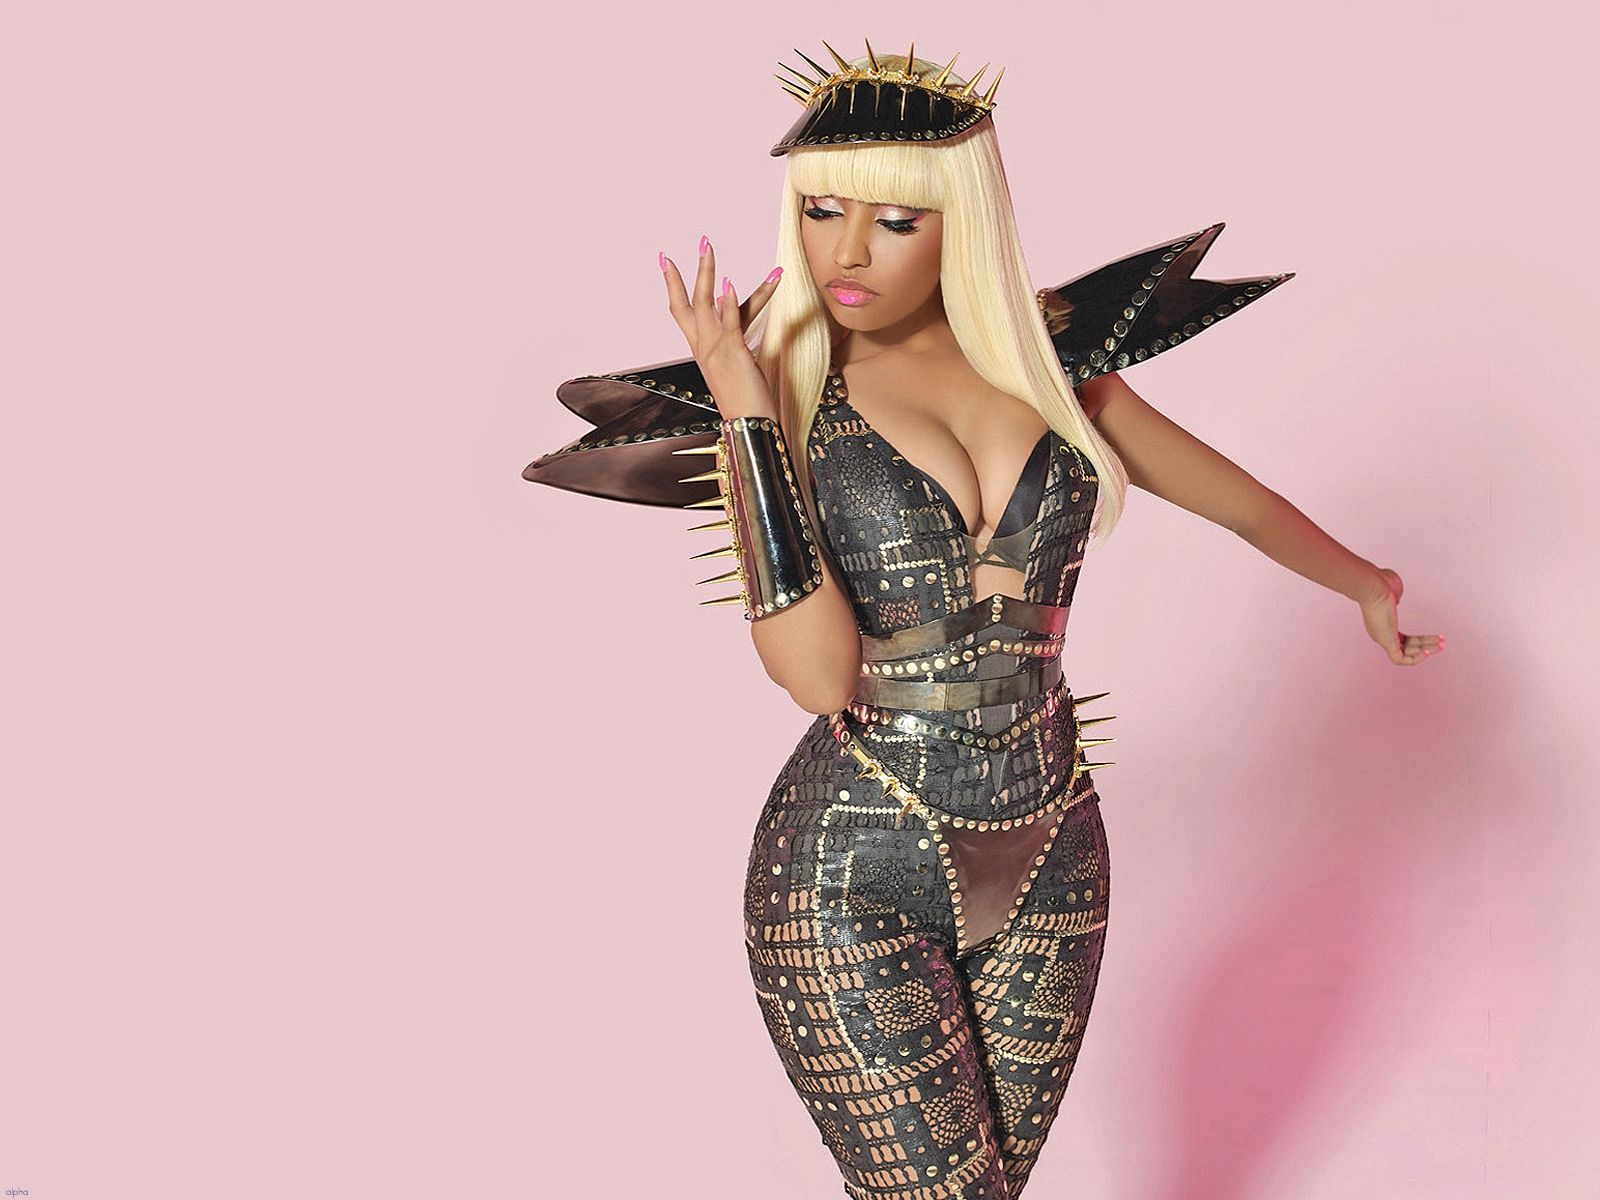 Nicki Minaj Wallpaper Nicki Minaj P Nicki Minaj Photos Nicki Minaj Nicki Minaj Pink Friday